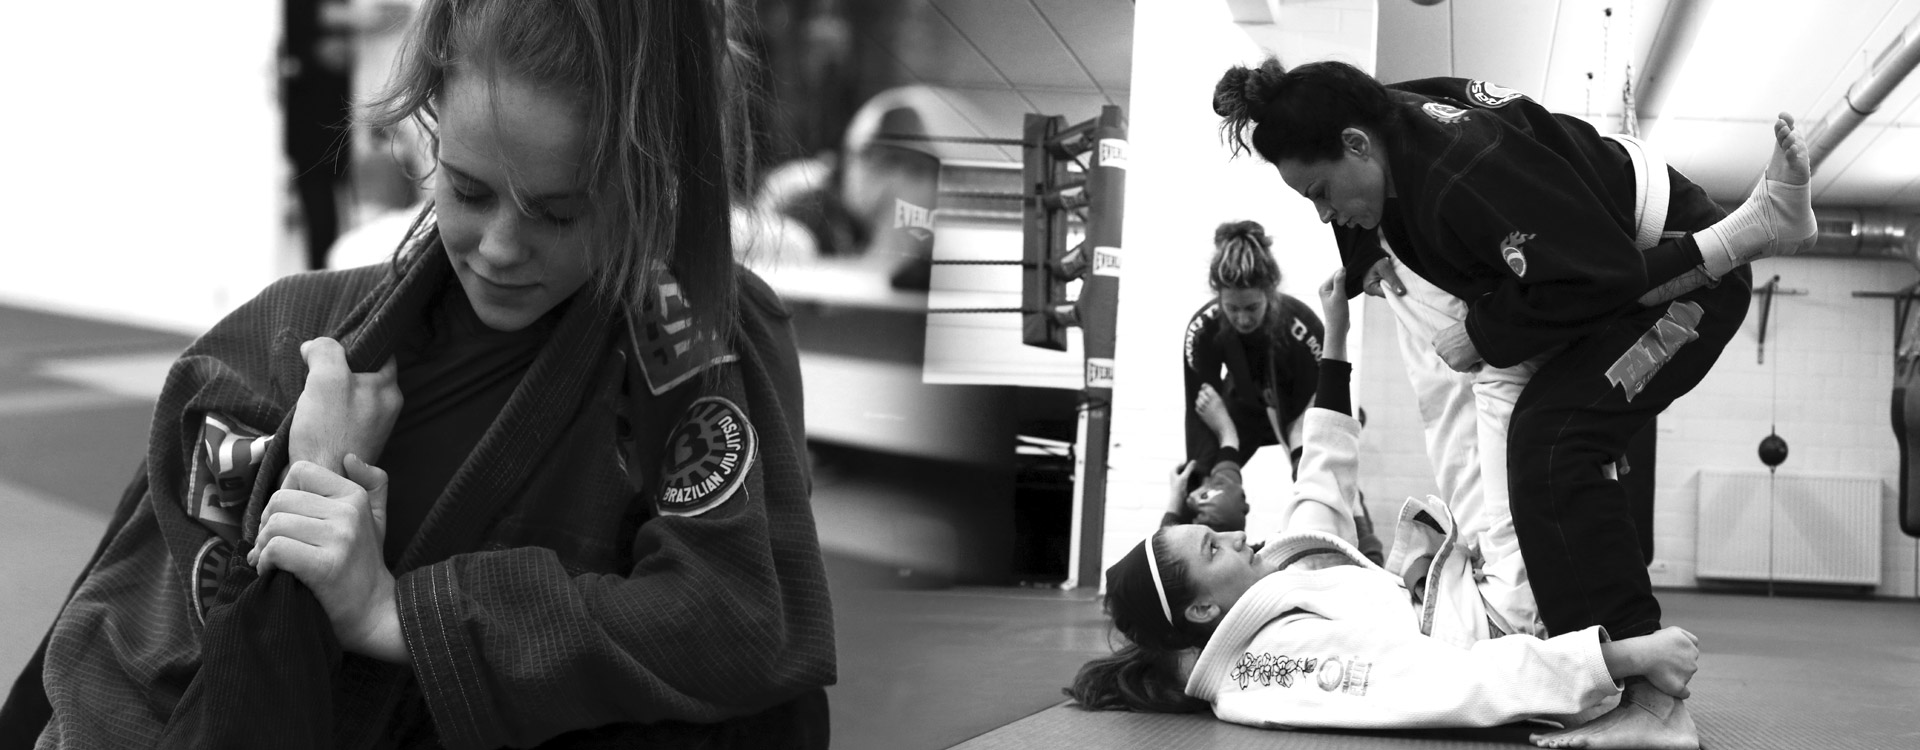 Brazilian Jiu Jitsu at Brasa Belgium Leuven Martial Arts atmosphere Women on the Mat